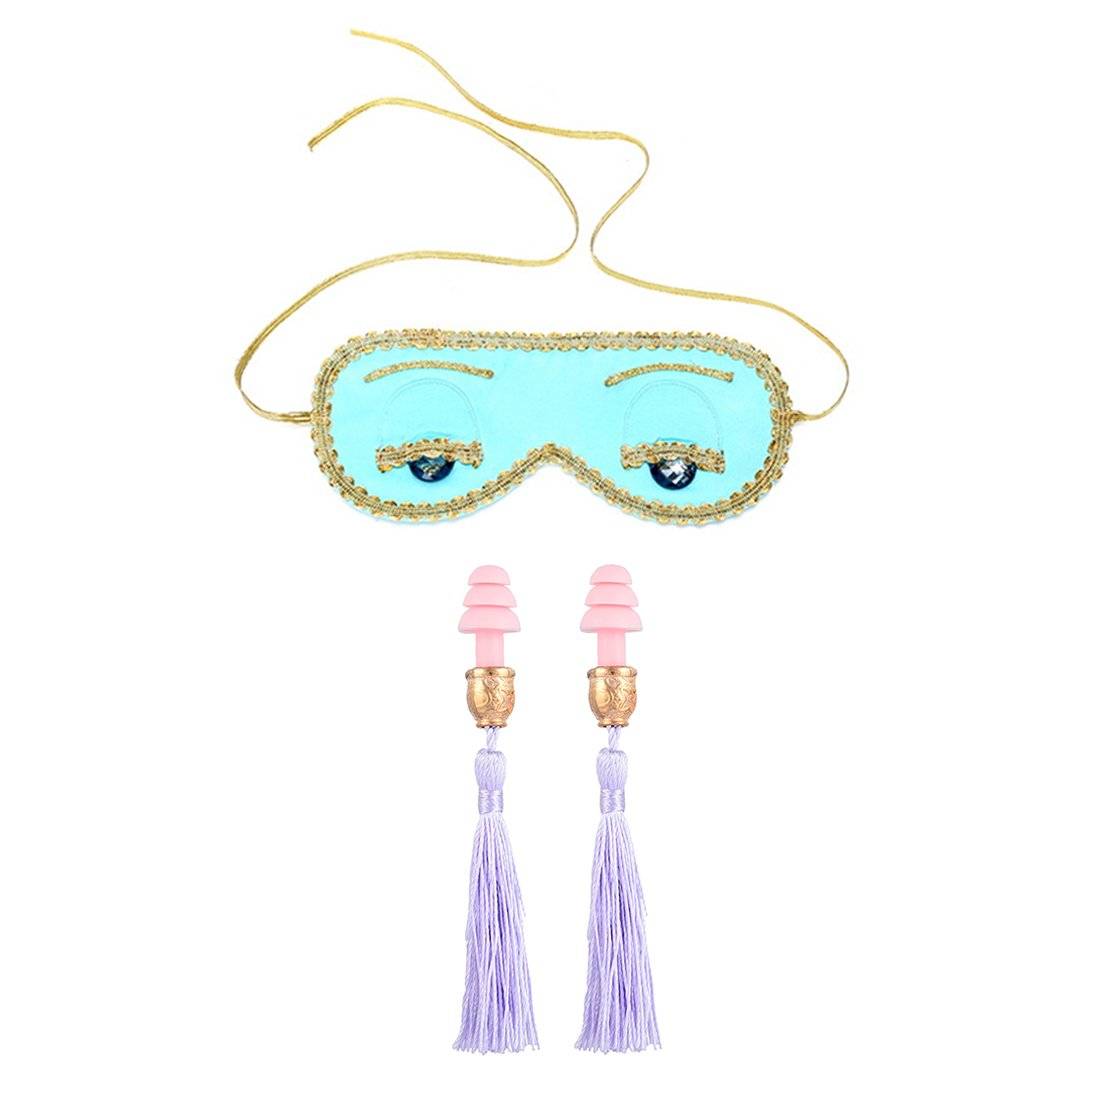 Sleep Eye Mask and Earplug Set - Audrey Hepburn in Breakfast at Tiffany's by Utopiat